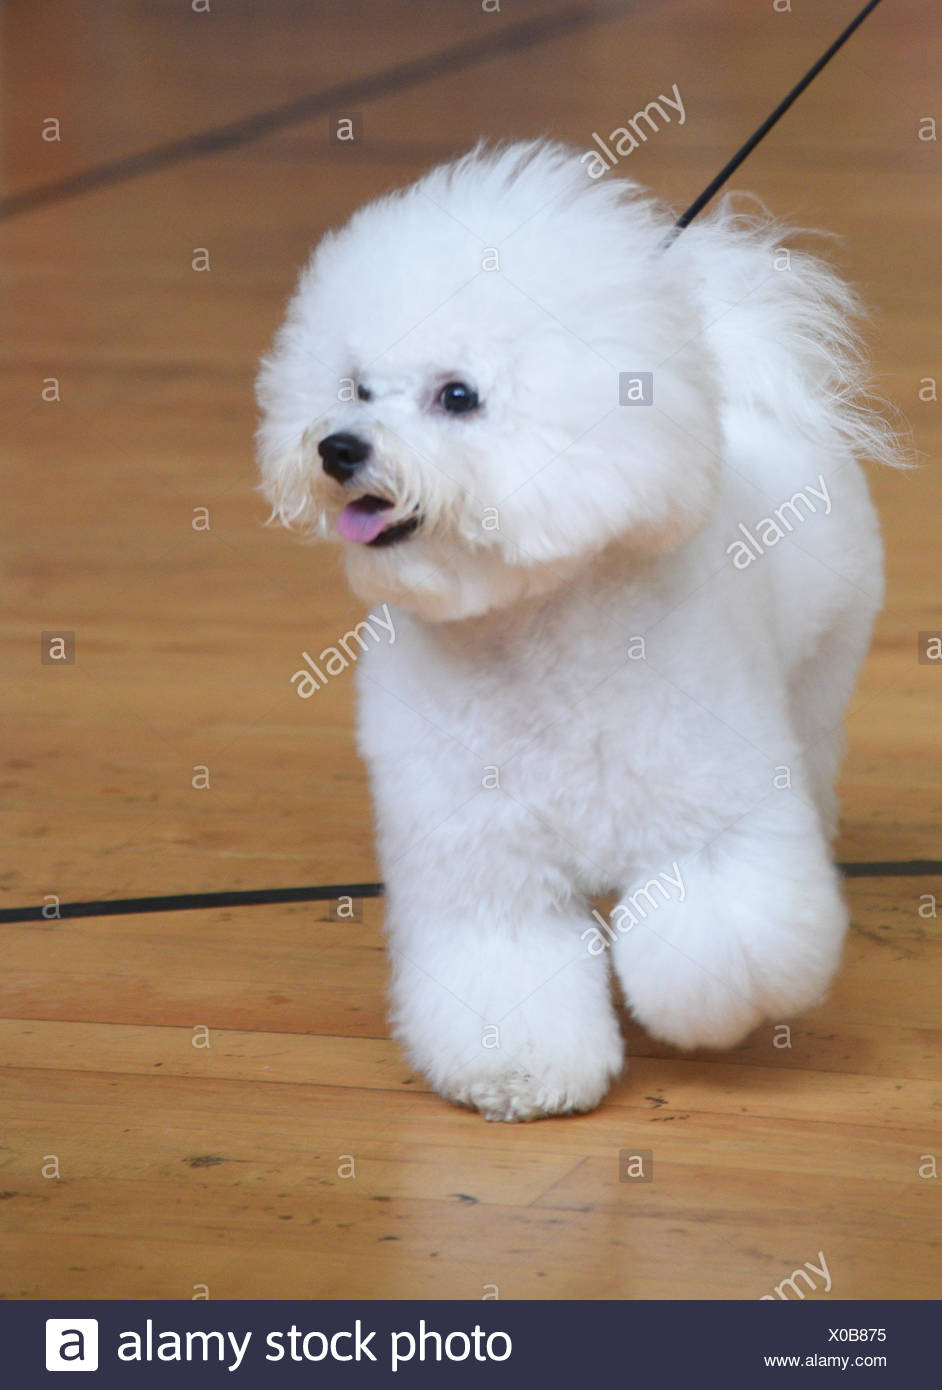 Bichon Frise (curly lap dog) is a small breed of dog of the Bichon type. The Bichon Frise is a member of the Non-Sporting Group of dog breeds in the U - Stock Image